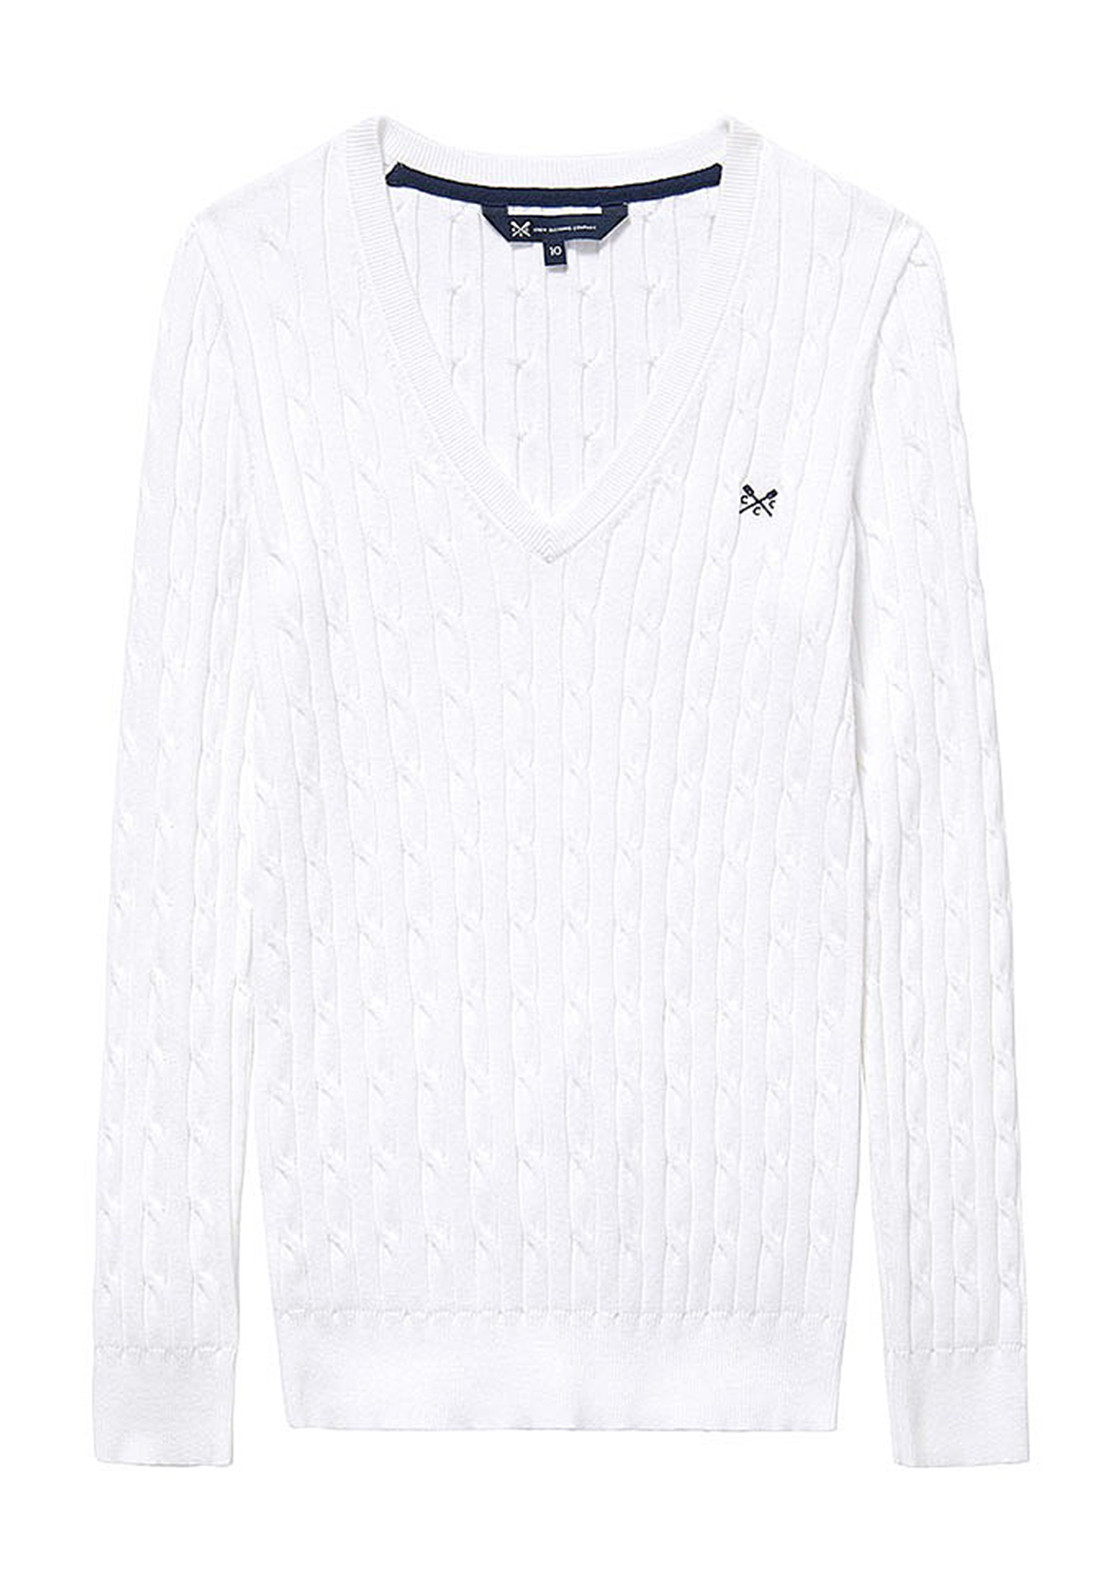 595dafd8ace Crew Clothing Company Cable Knit Jumper